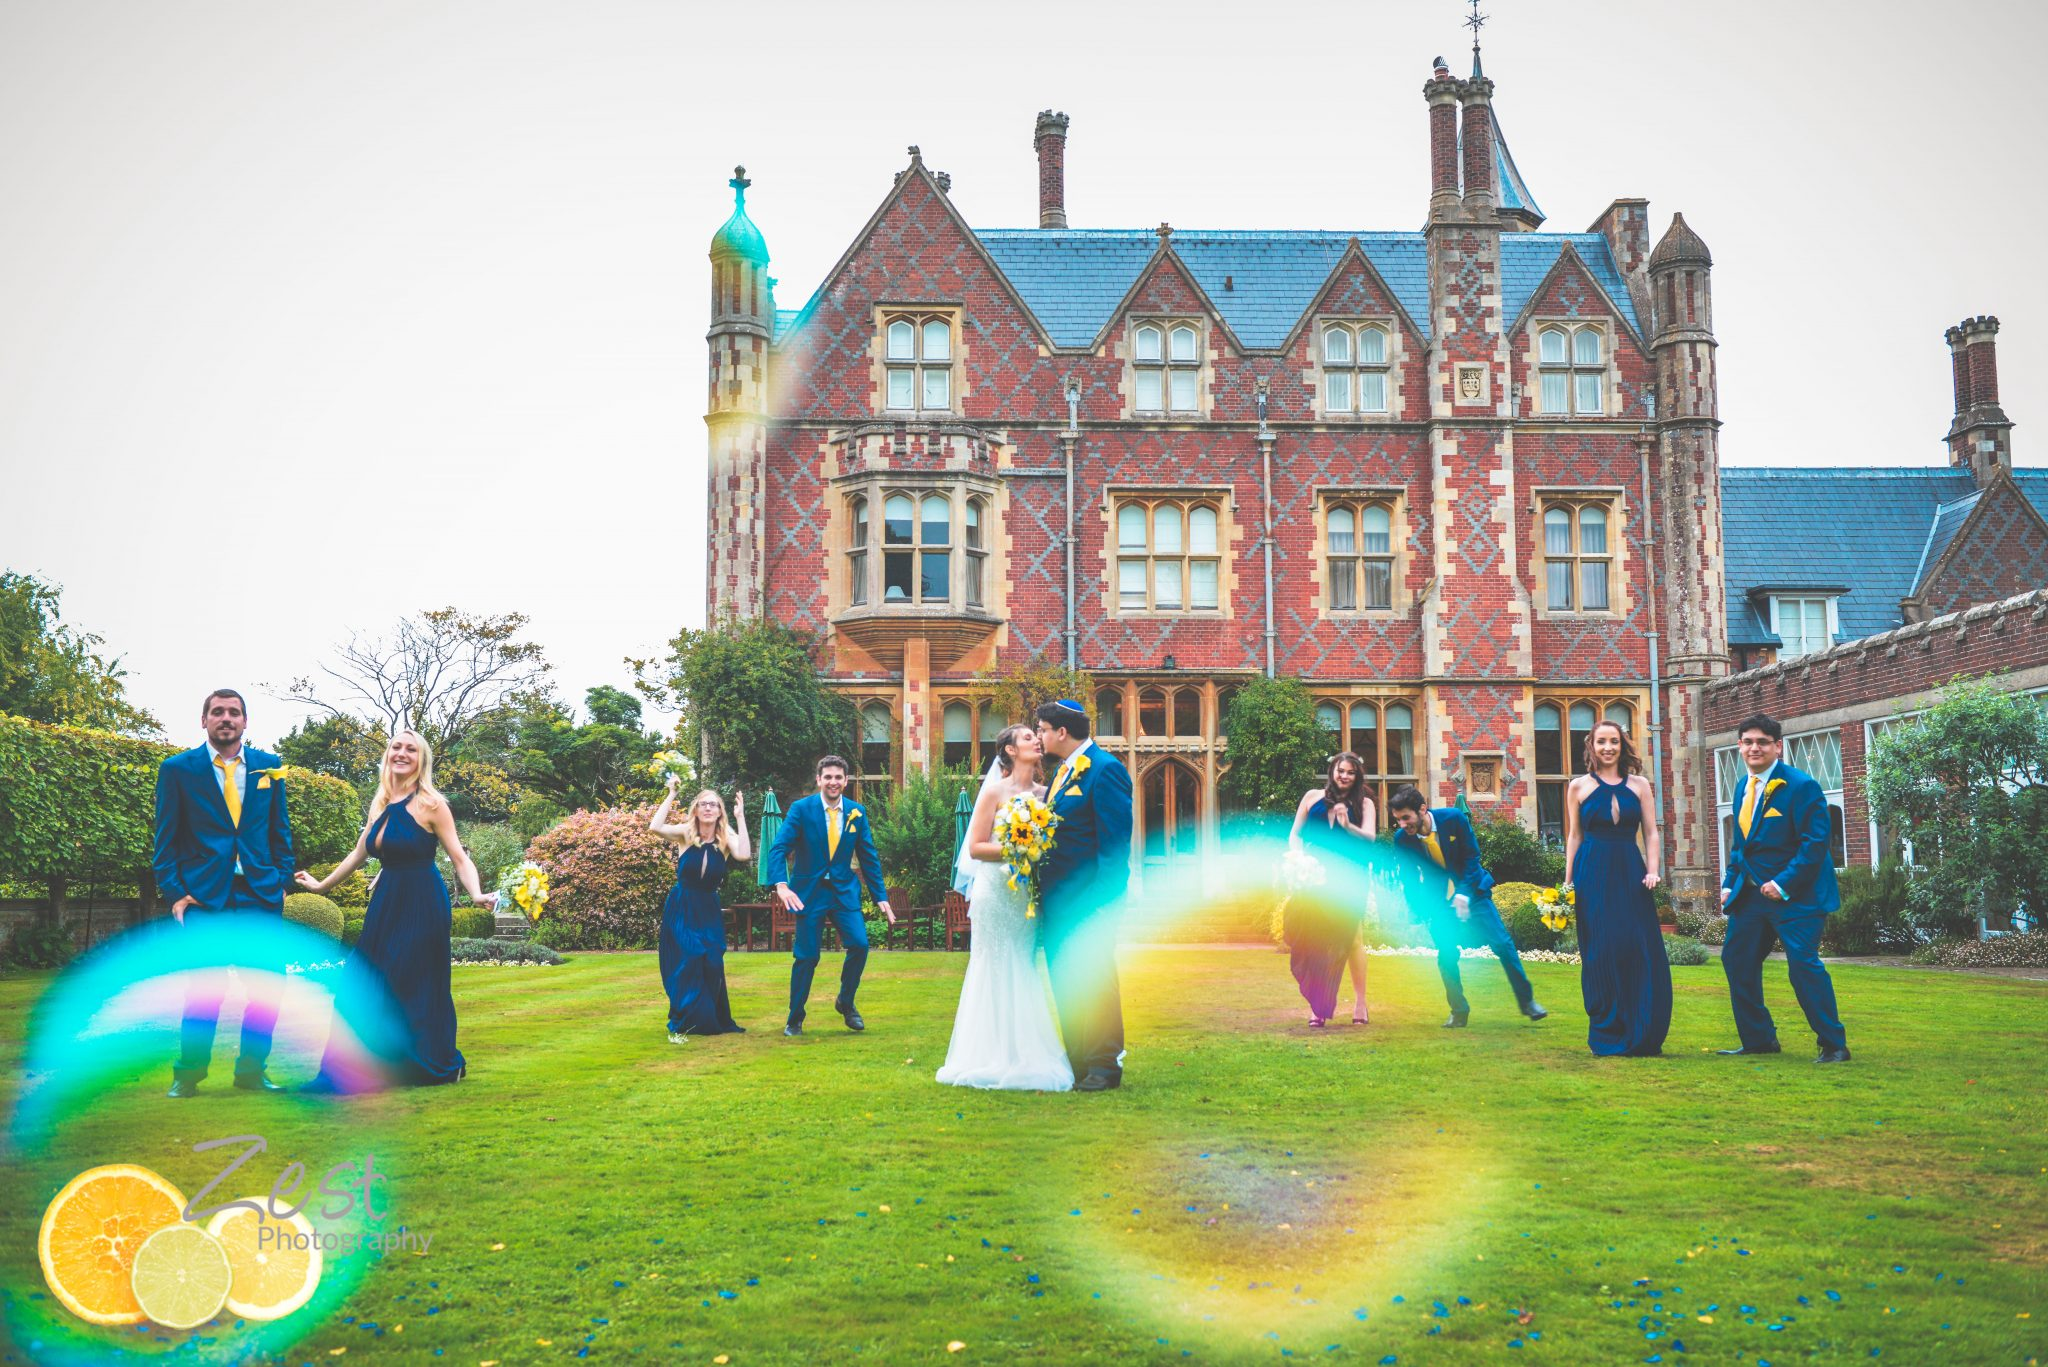 photography at a jewish wedding at horsted place, east usssex